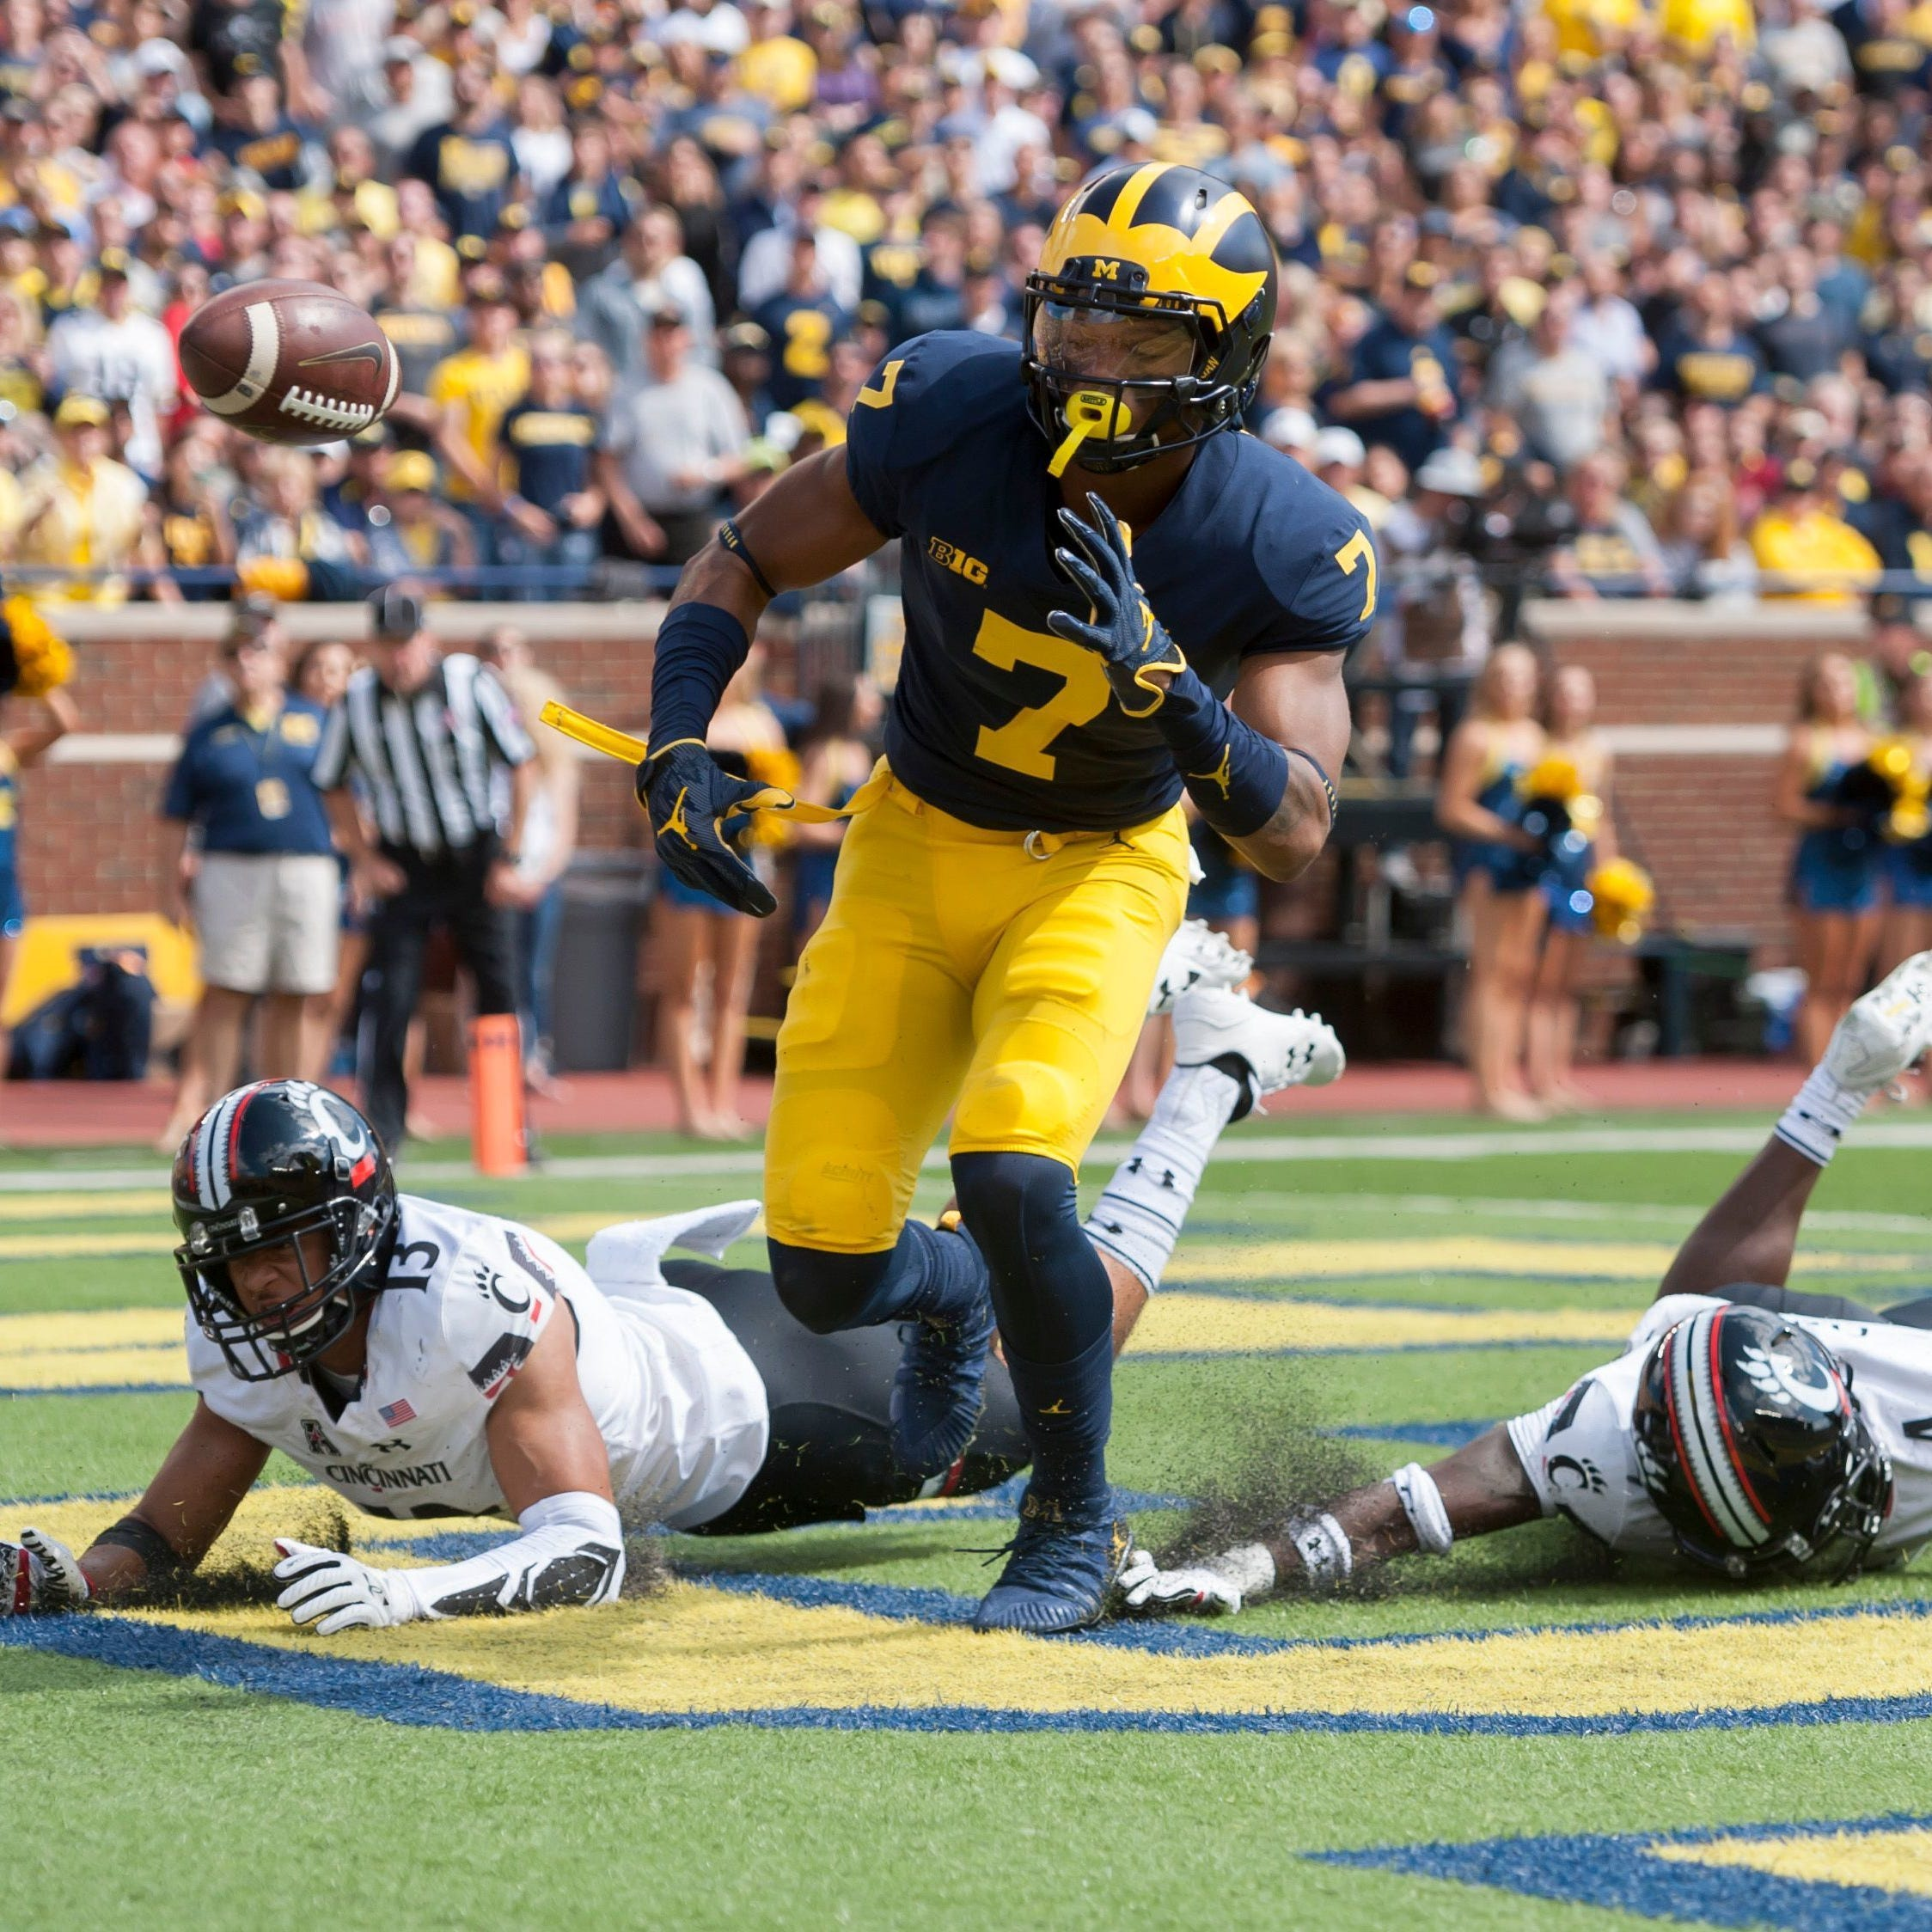 Michigan receiver Tarik Black to return on Saturday, or maybe not